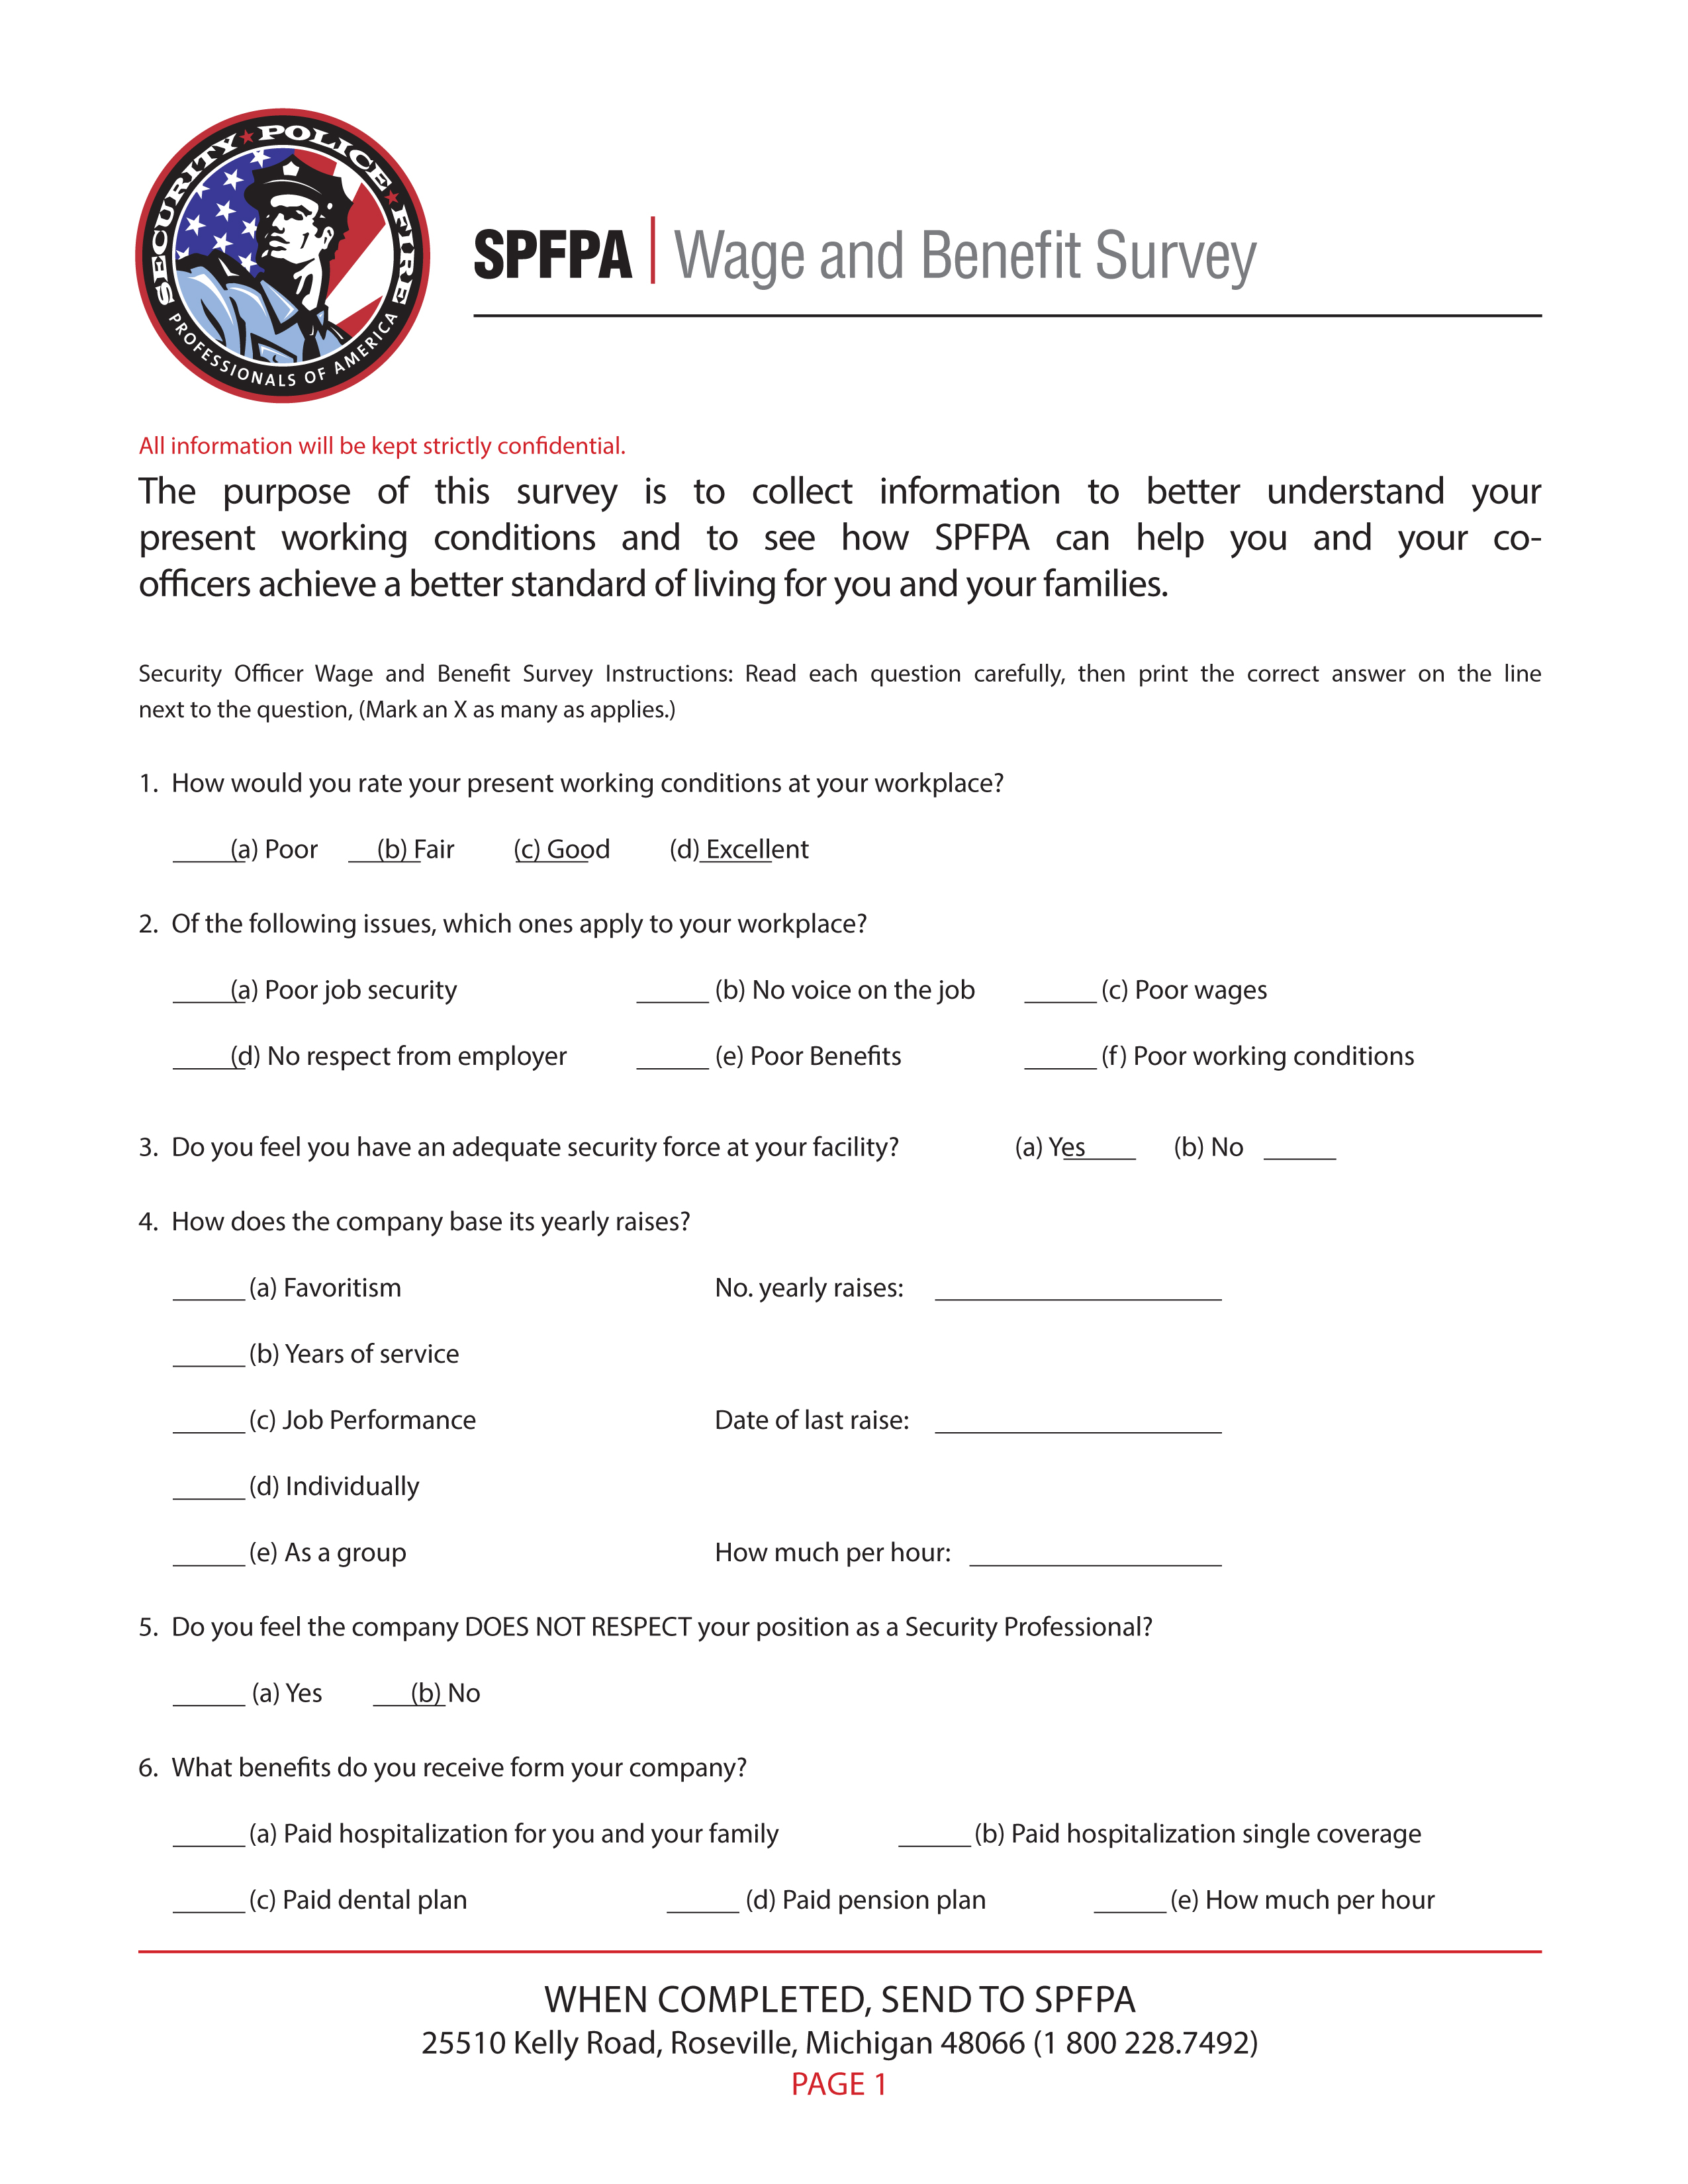 SPFPA– Wage and Benefit Survey Forms